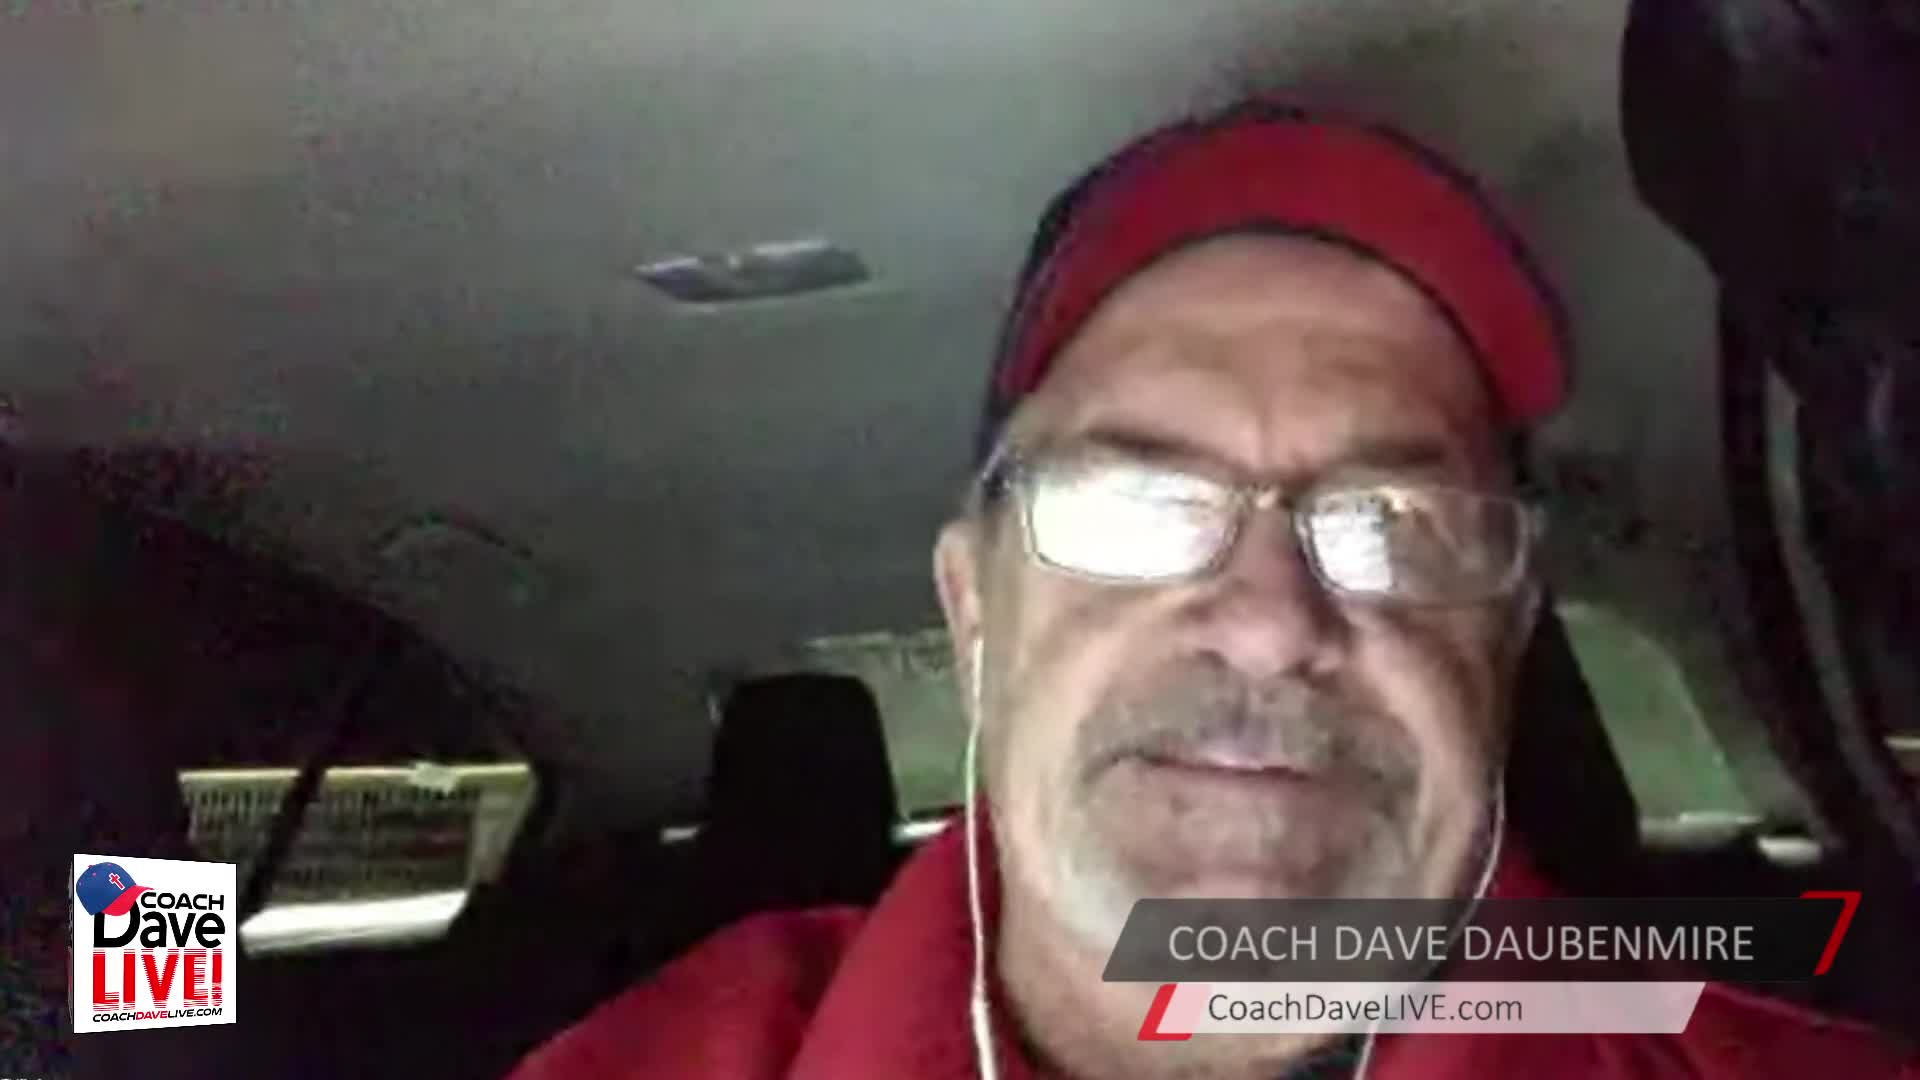 Coach Dave LIVE | 02-04-2021 | Transgender Tragedies with Guests David Arthur and Mike Heath